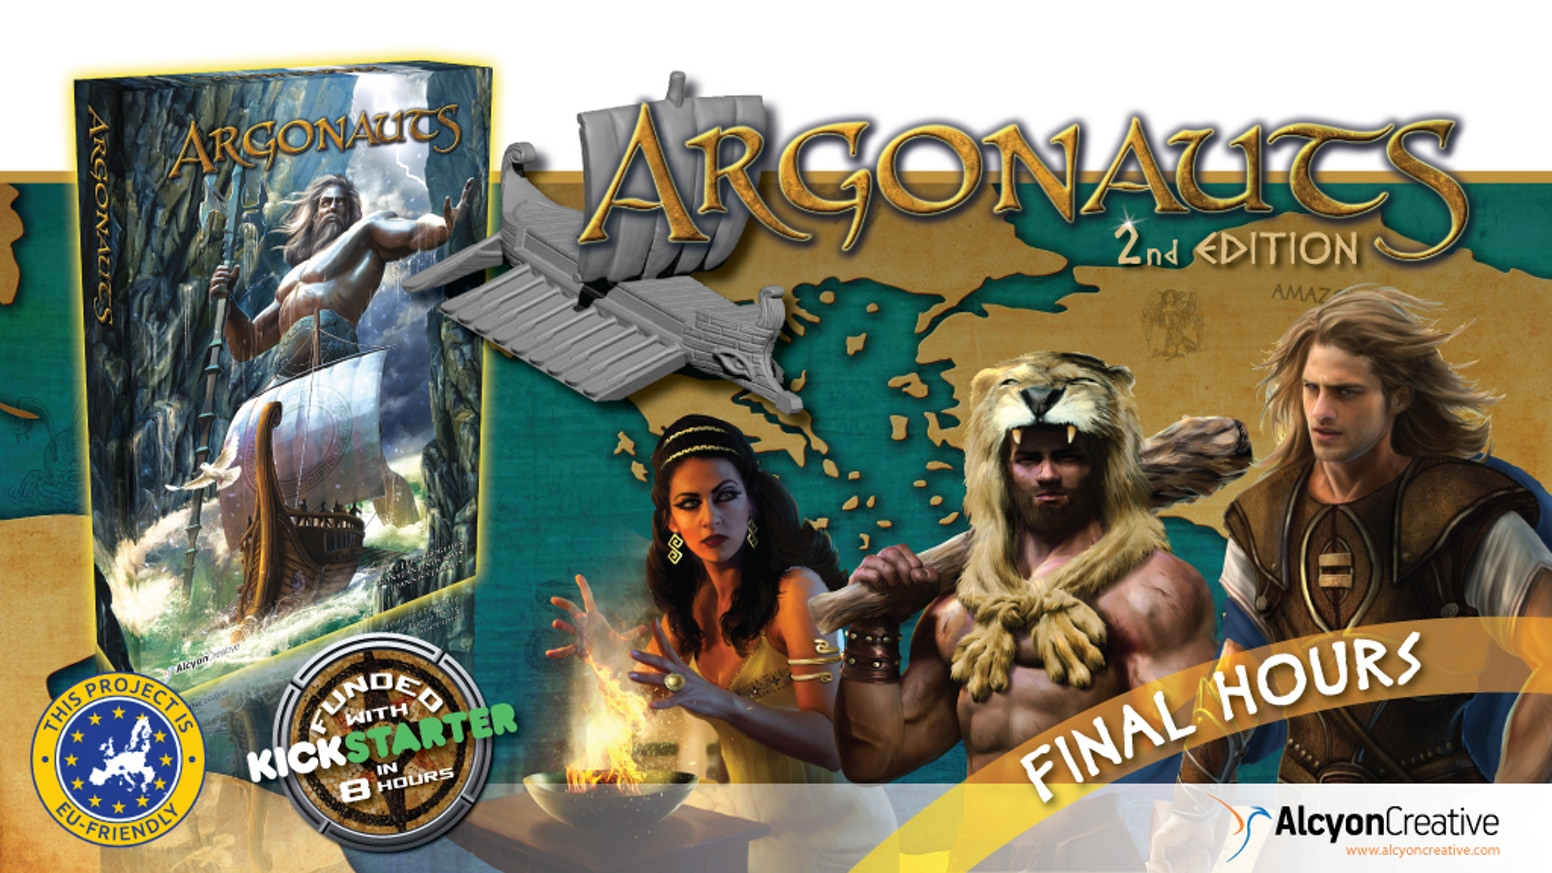 Co-op game, 1-4 players. Join Jason and the Argonauts in their legendary journey to reclaim the Golden Fleece. Deluxe 2nd Edition.